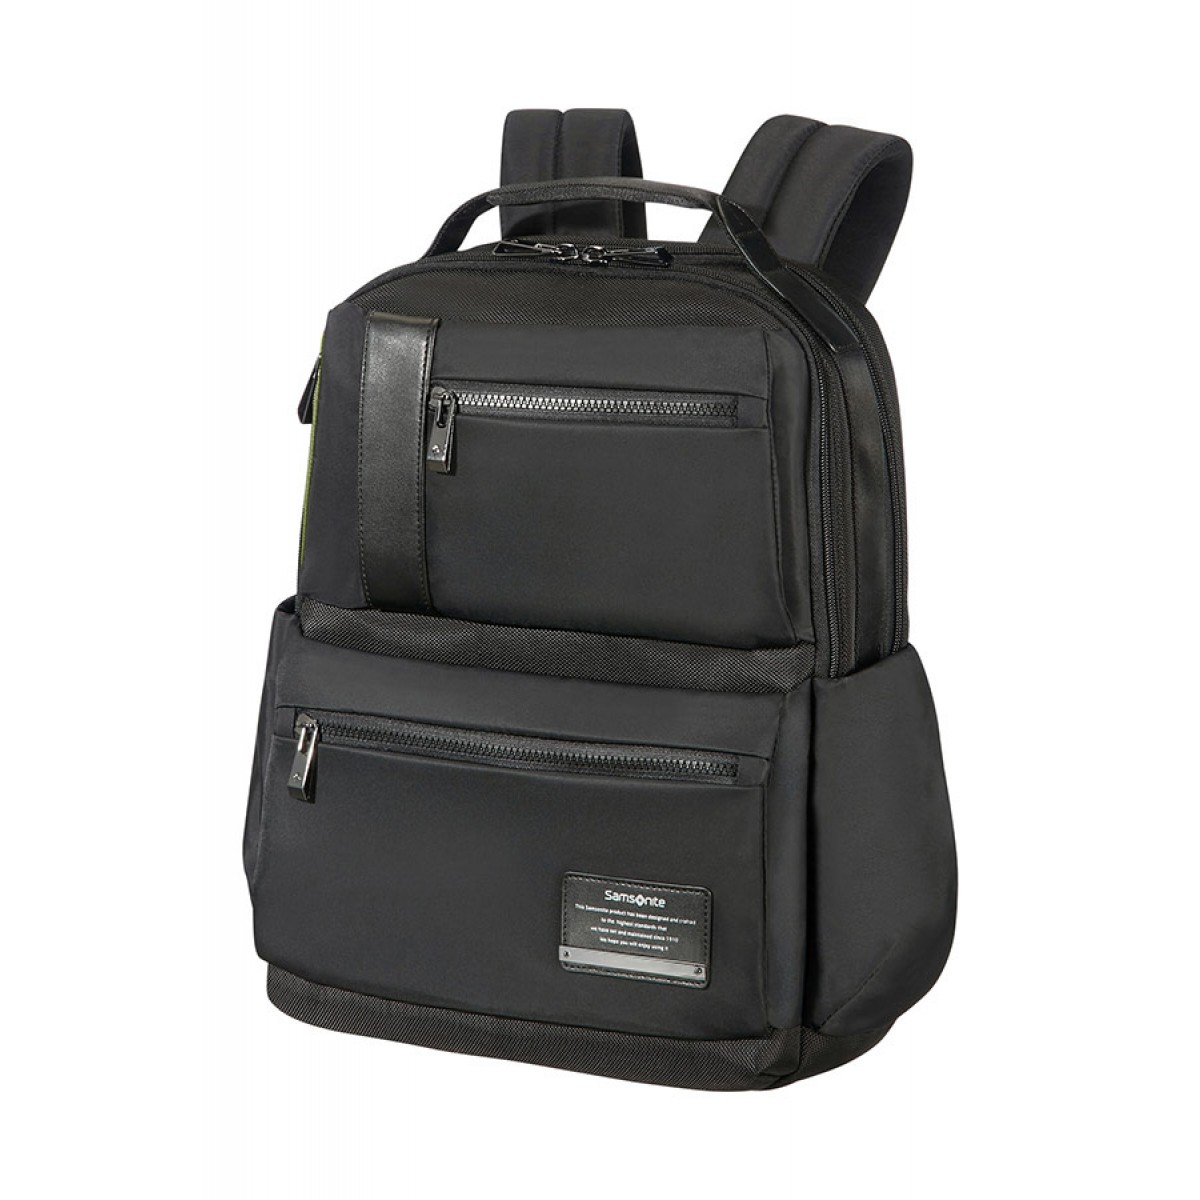 LAPTOP BACKPACK 14.1 OPENROAD - SAMSONITE